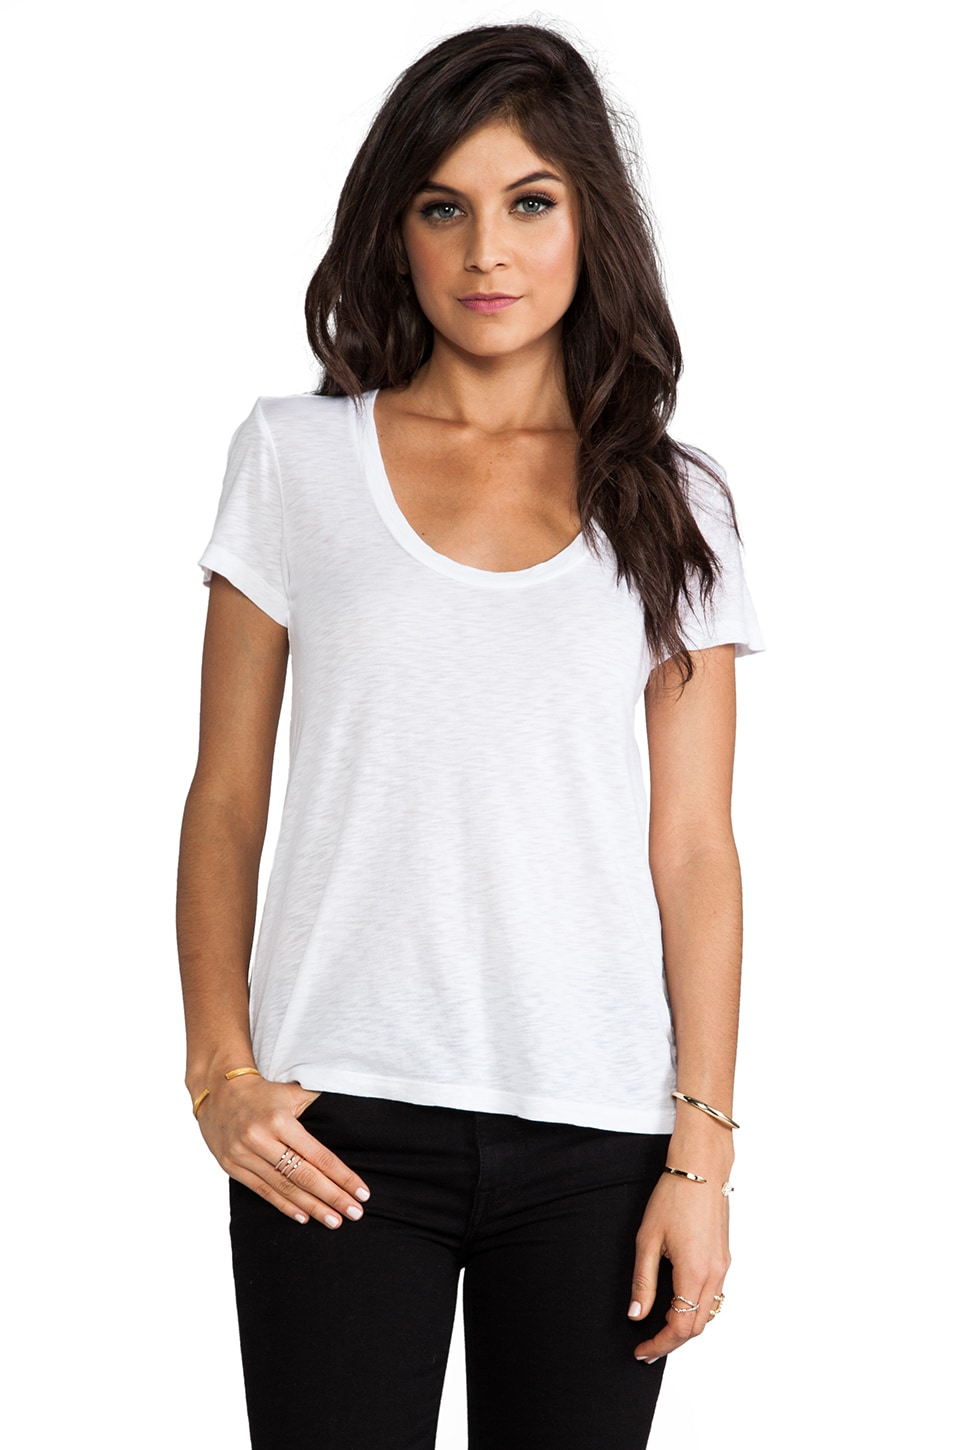 Velvet by Graham & Spencer Koren Lux Slub Short Sleeve Tee in White